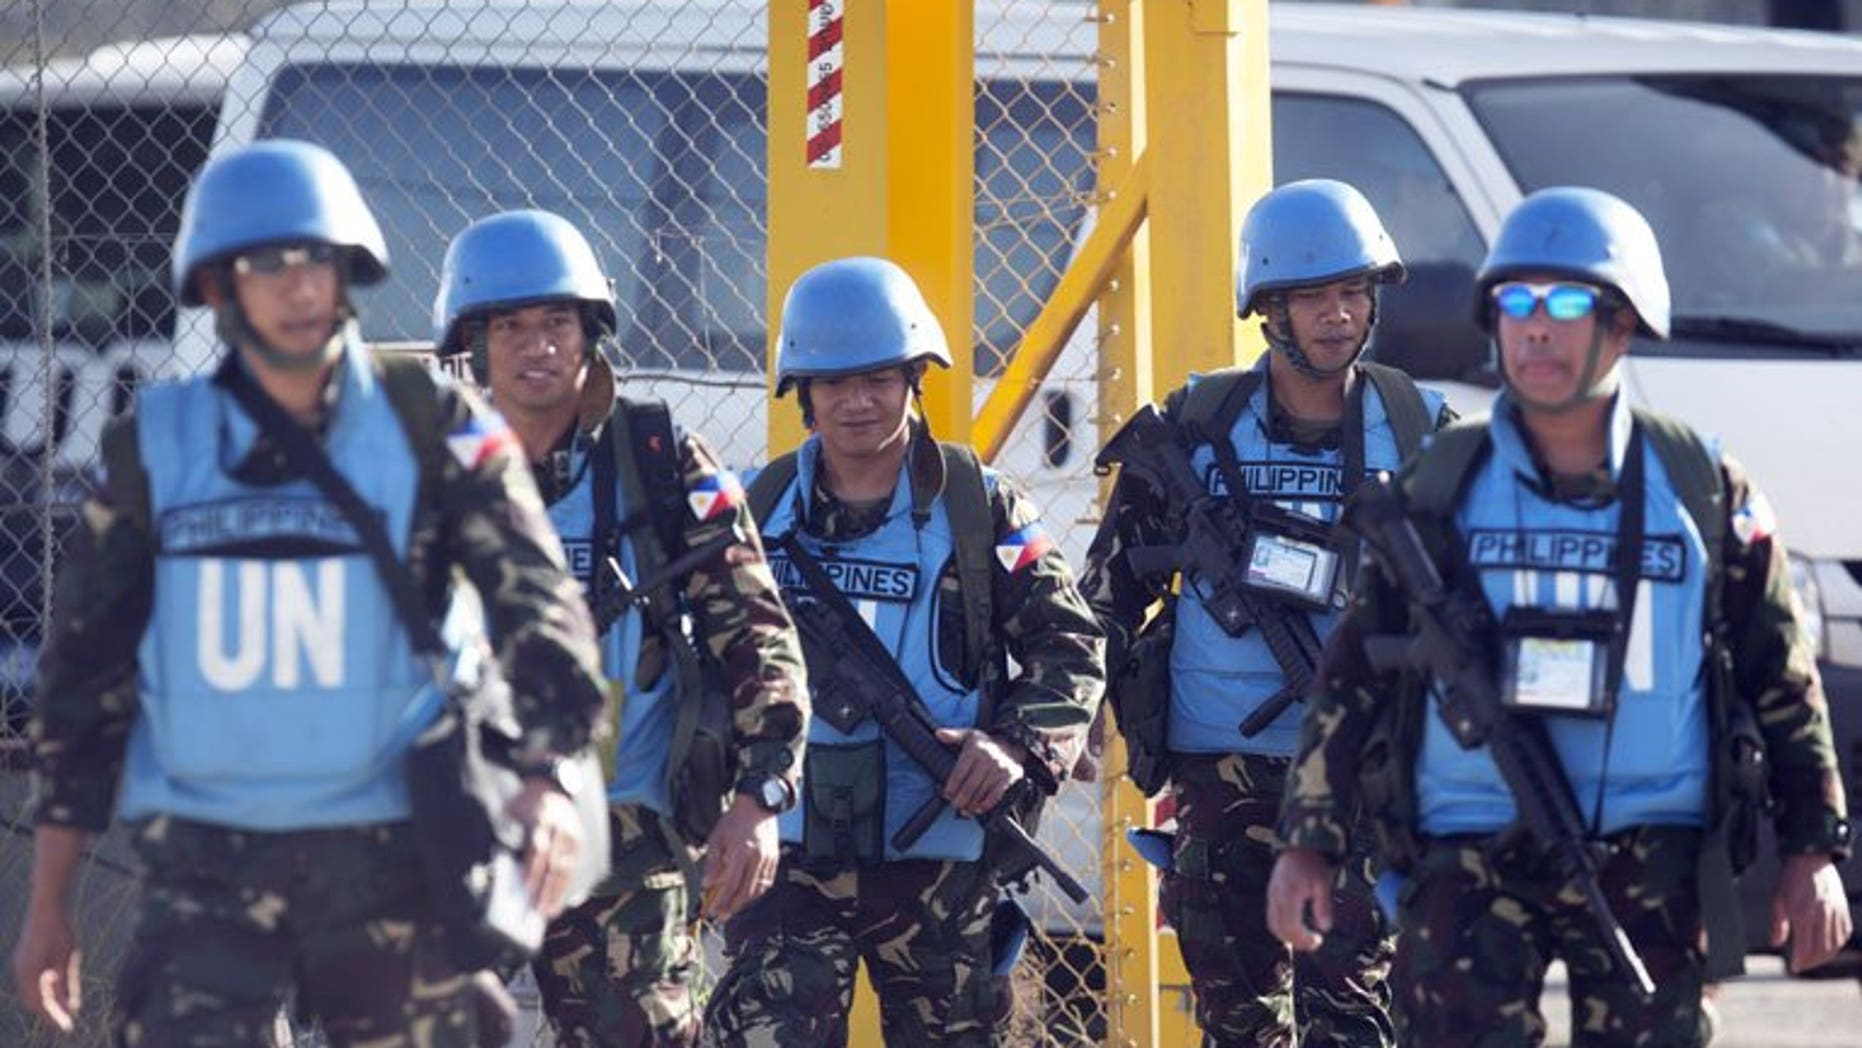 Philippines troops at the Quneitra crossing between Syria and the Israeli annexed Golan Heights last week. The Philippines Wednesday said it would keep its peacekeepers in the Golan Heights until at least August, and may stay longer if the United Nations increased security there.